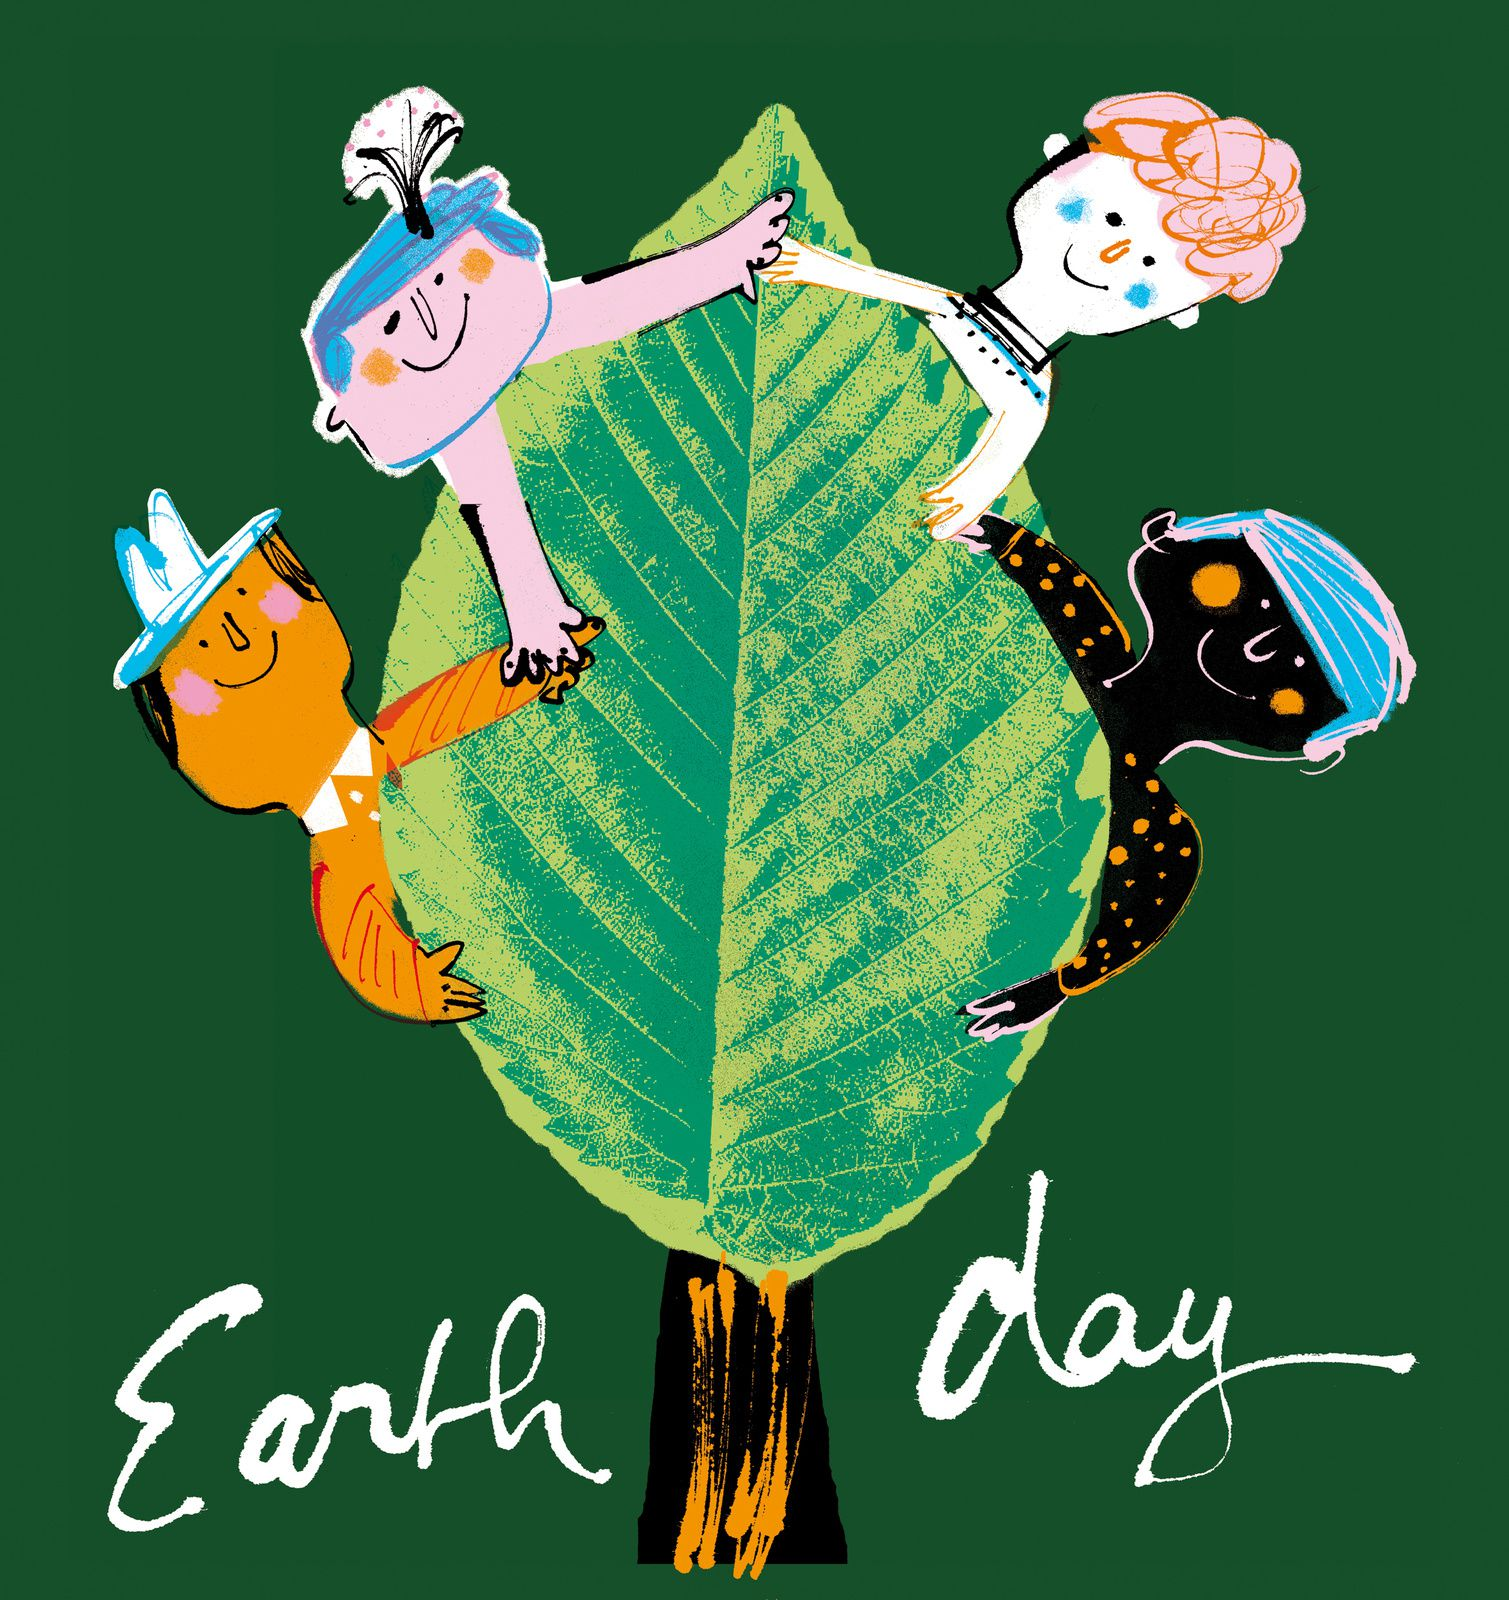 earth day !